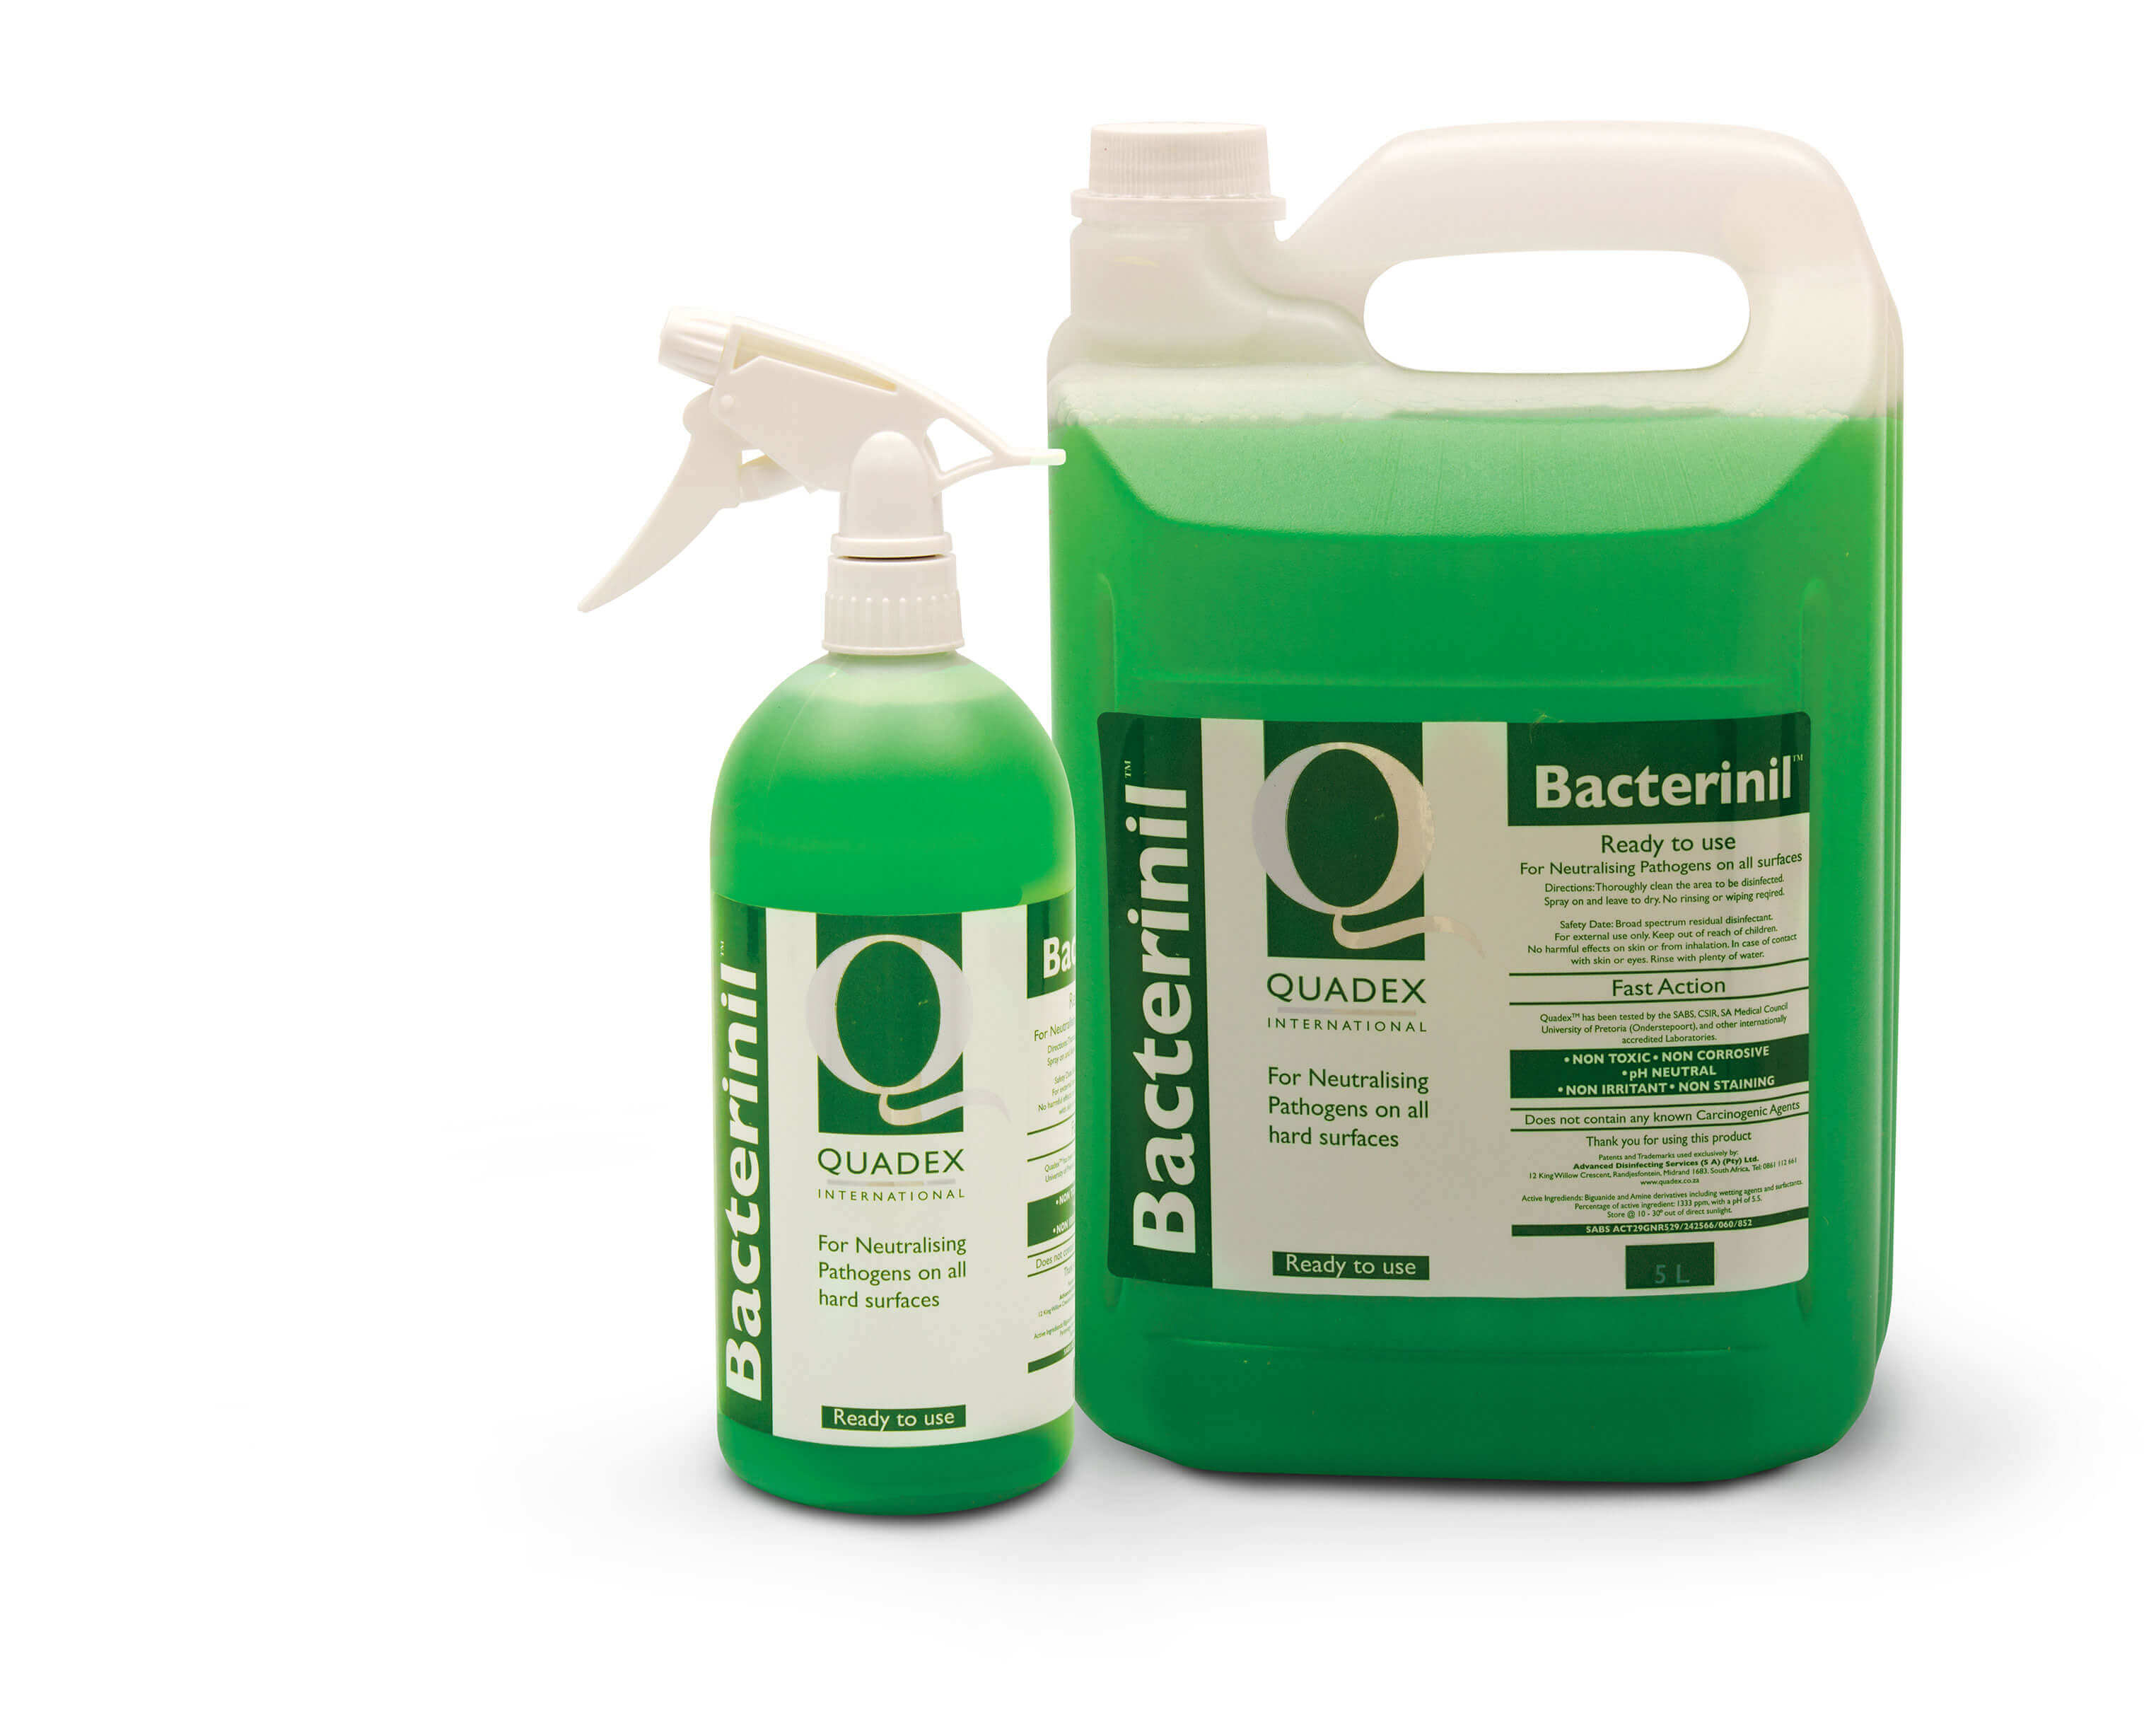 Bacterinil - RESIDUAL ACTION, NON-TOXIC, HARD SURFACE DISINFECTANT